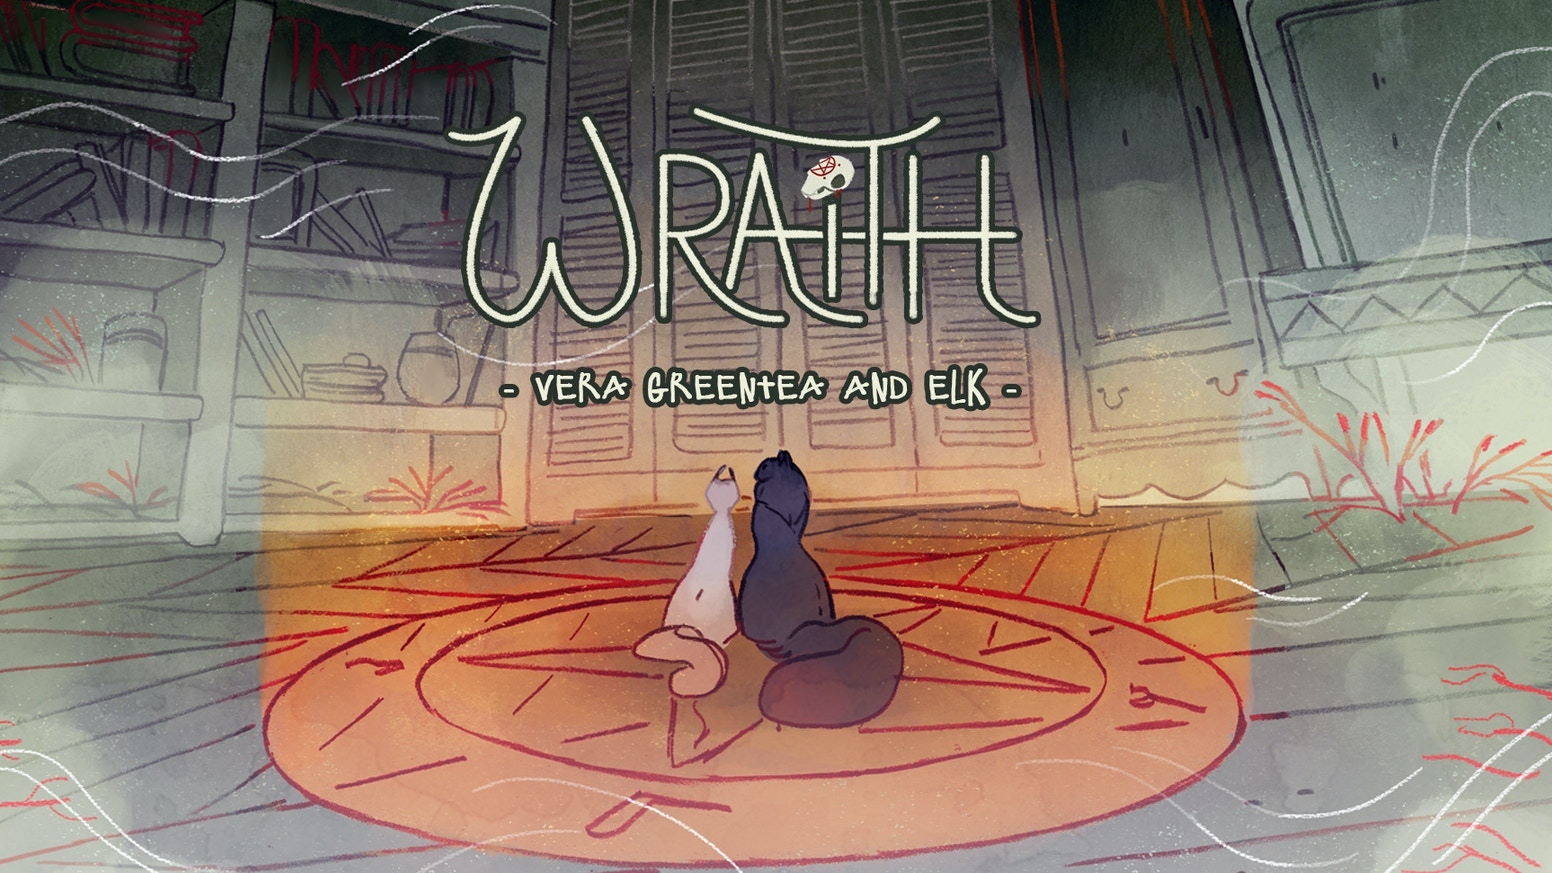 WRAITH is a spooky tale about forest animals and the haunted house they live in. Story by Vera Greentea and art by ELK. This KS is for Issue 2.